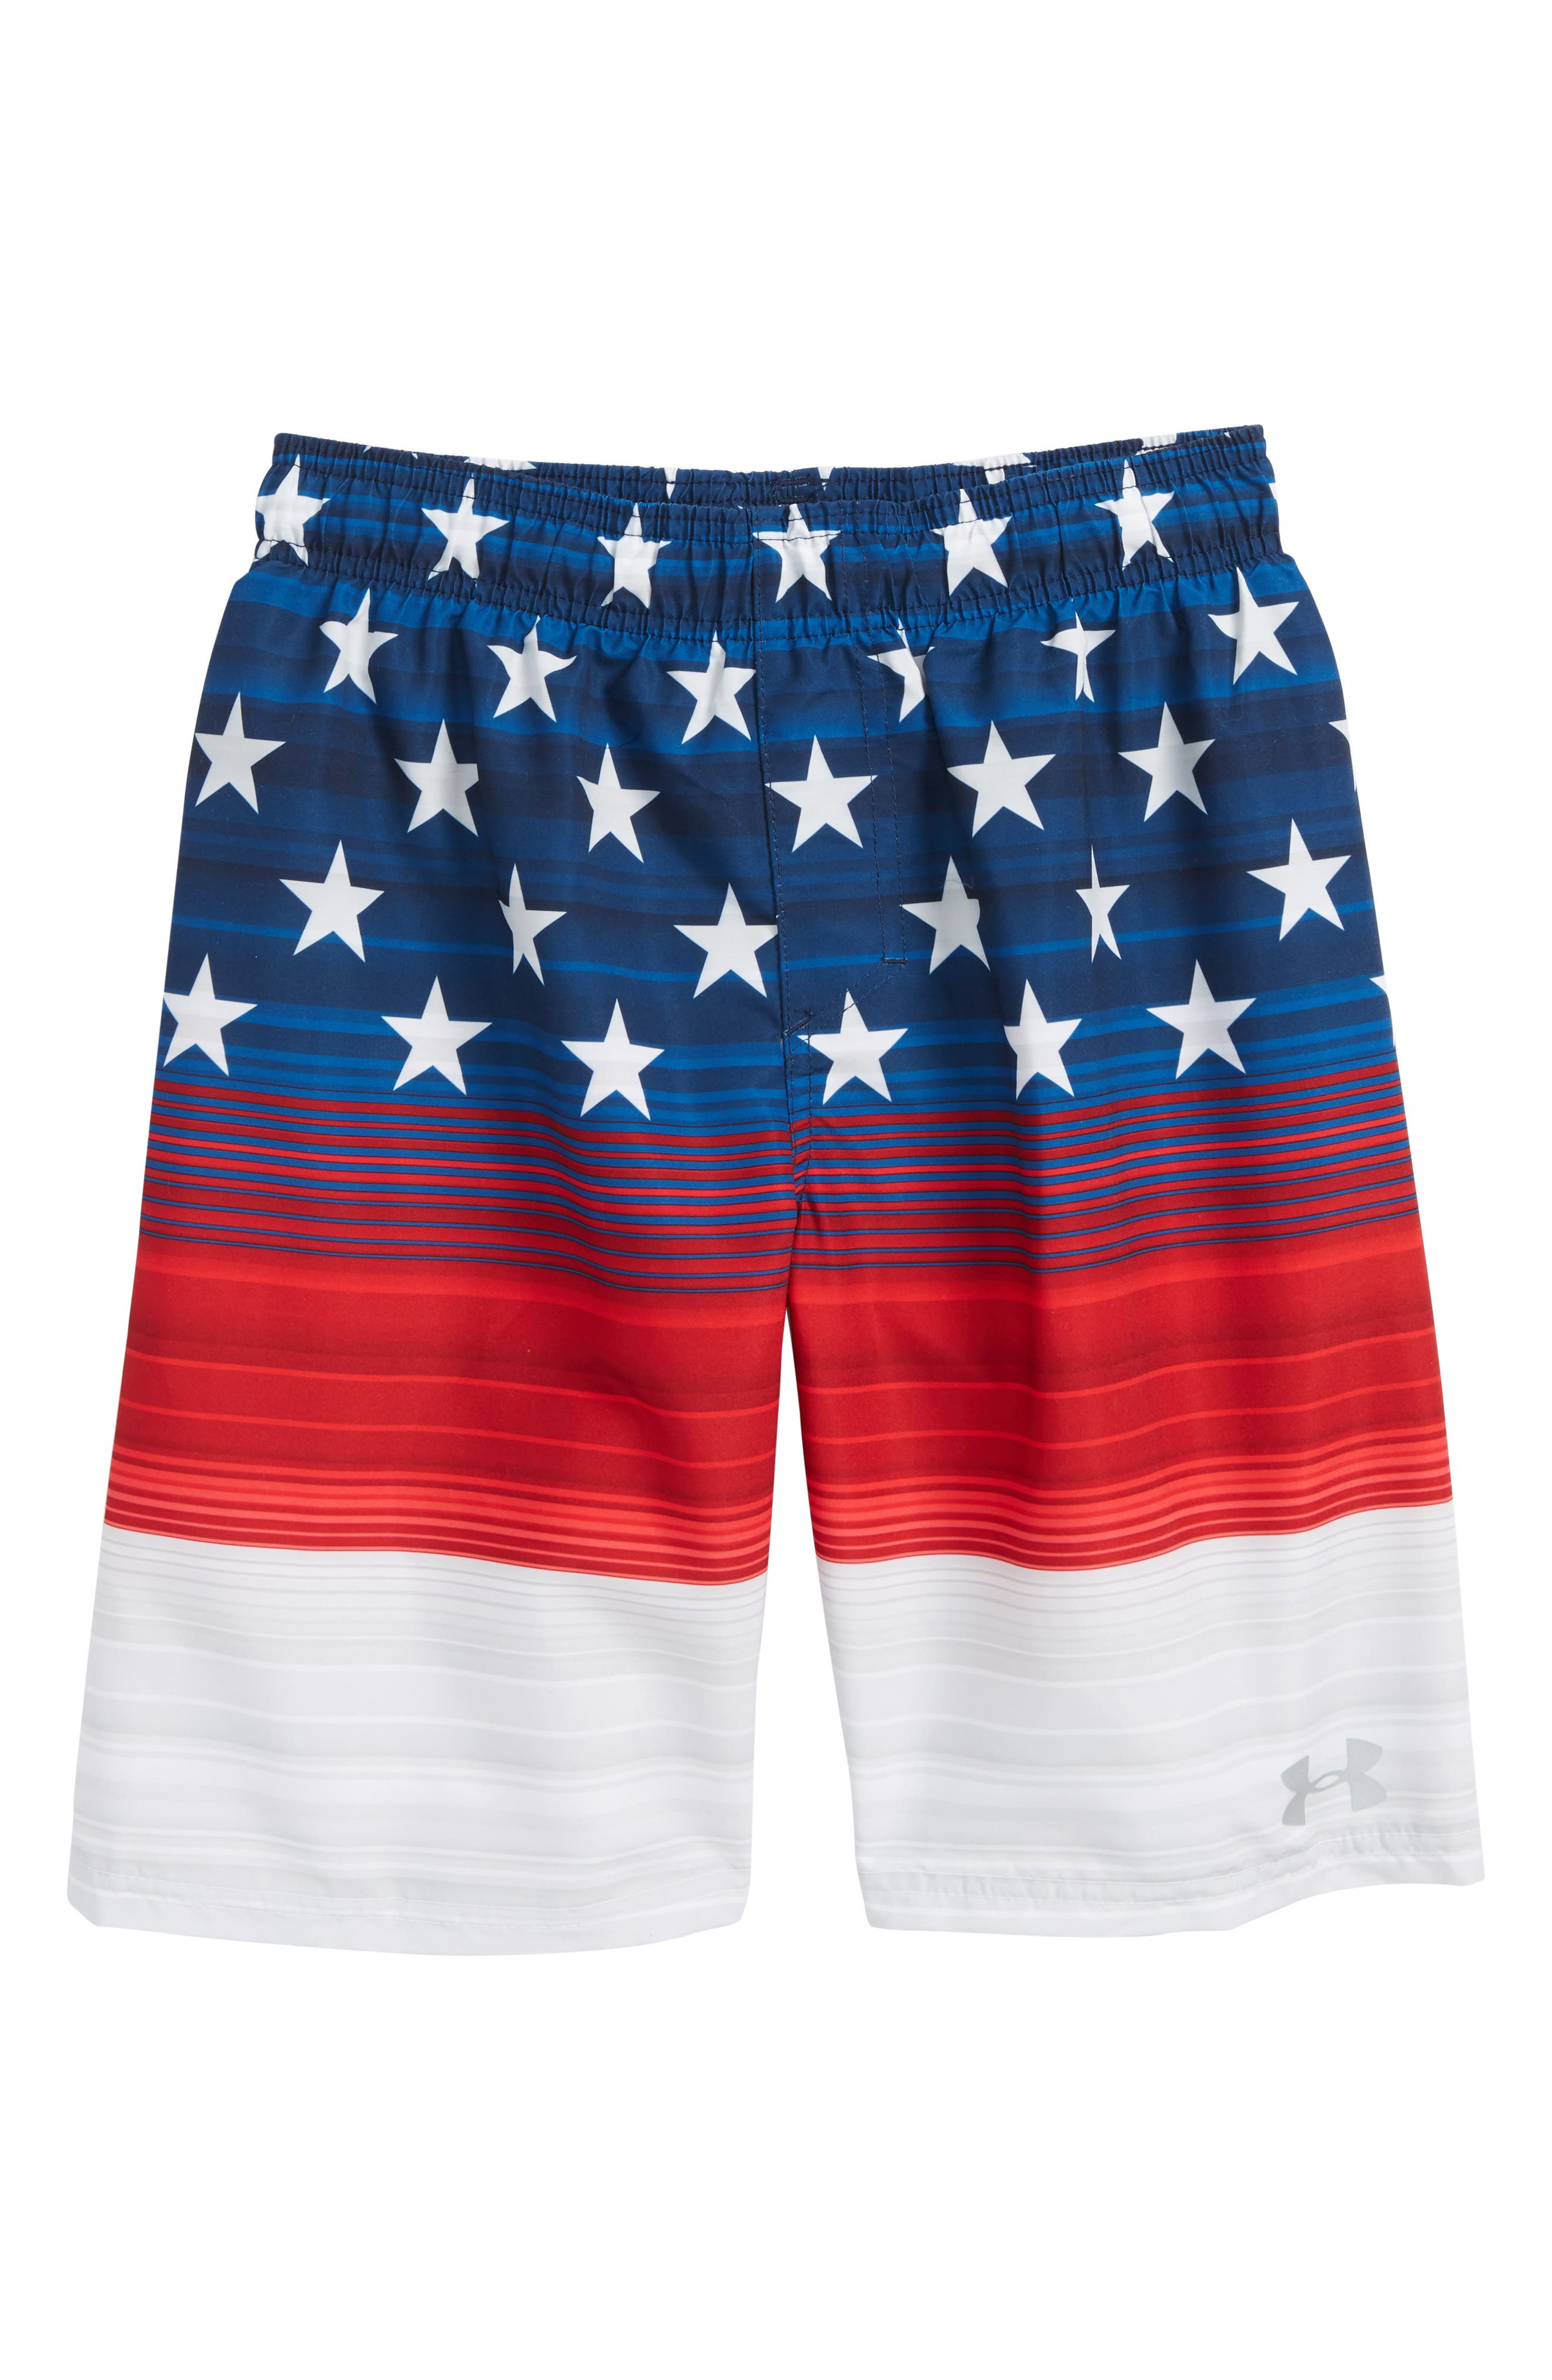 UNDER ARMOUR,                             Americana Stripe Volley Shorts,                             Main thumbnail 1, color,                             600